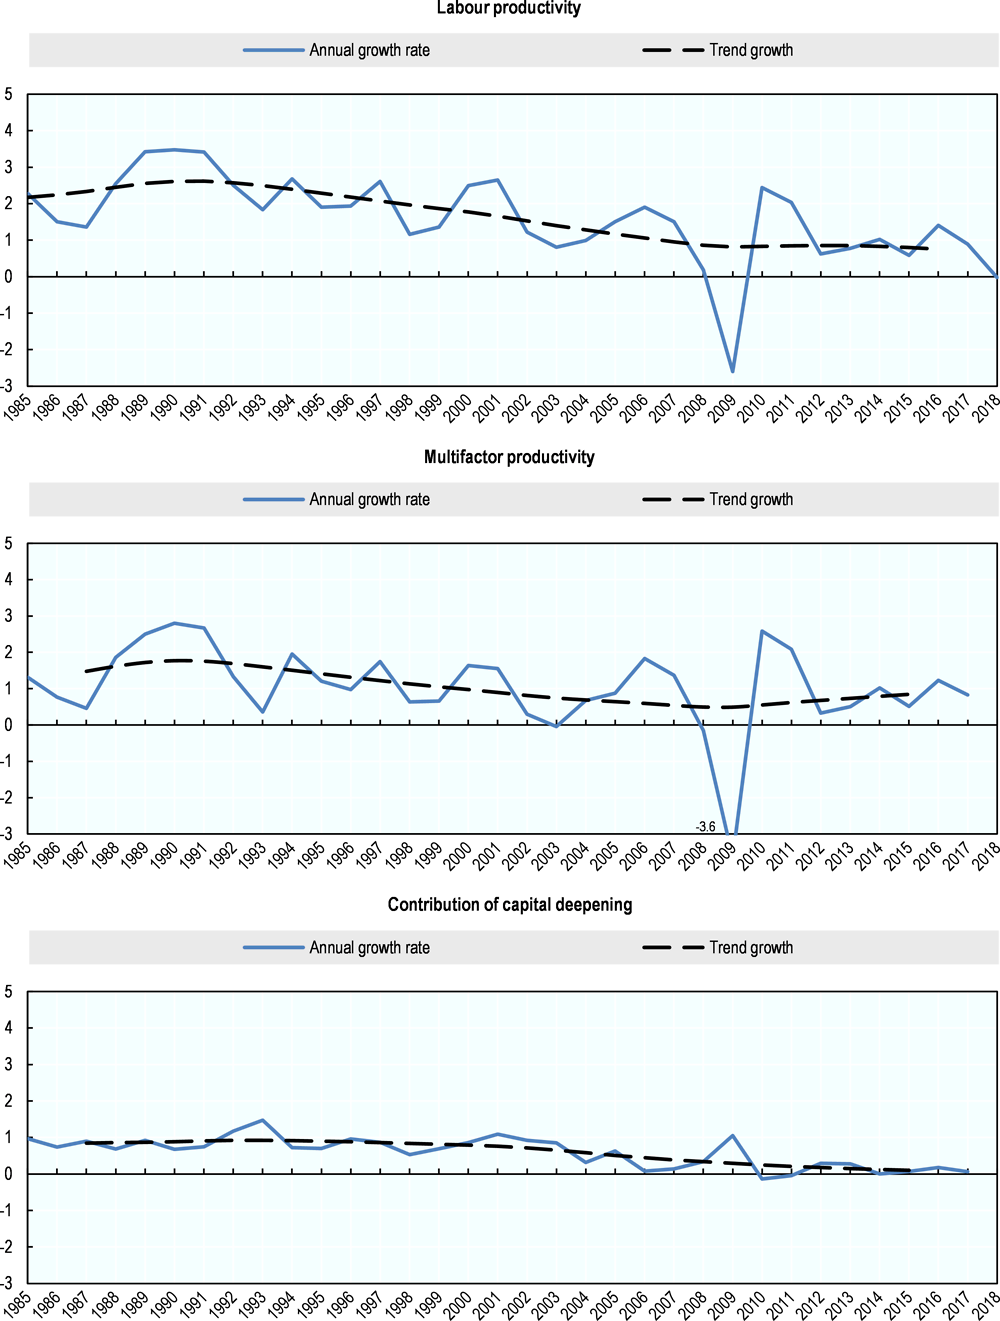 Figure 7.4. Labour productivity growth trend and its components, Germany